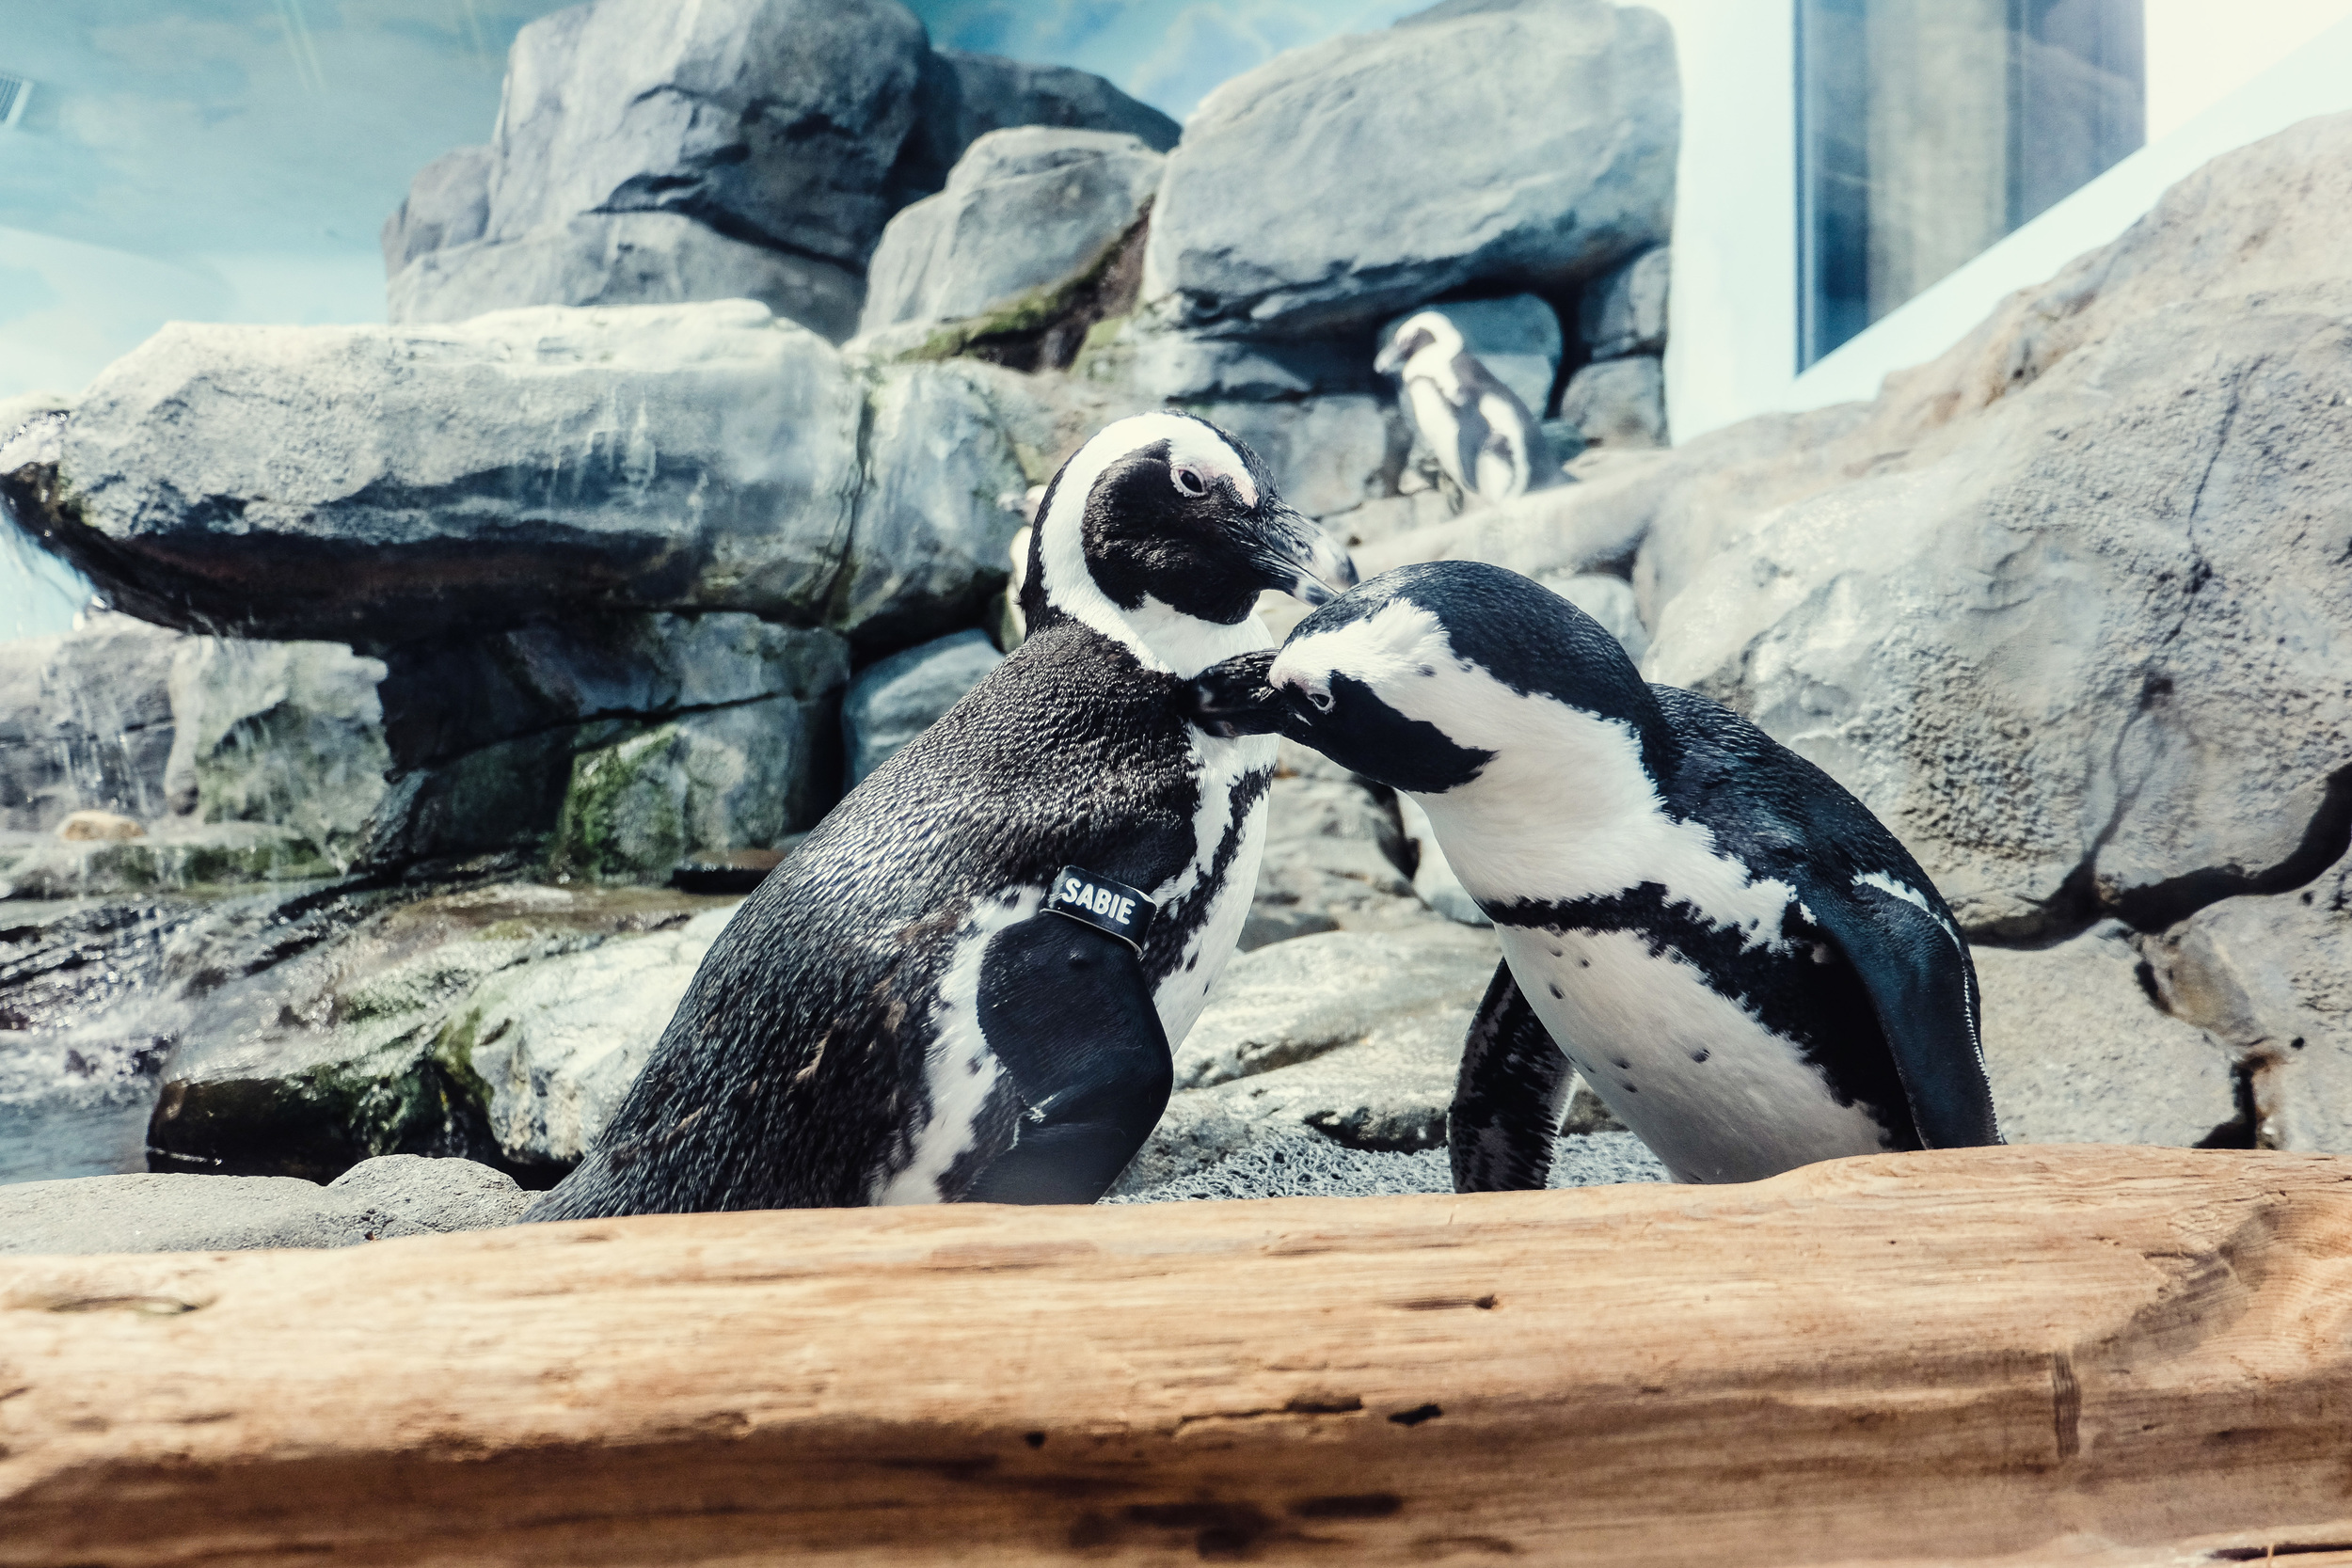 made it first time to  monterey bay aquarium and met some really sweet penguins.